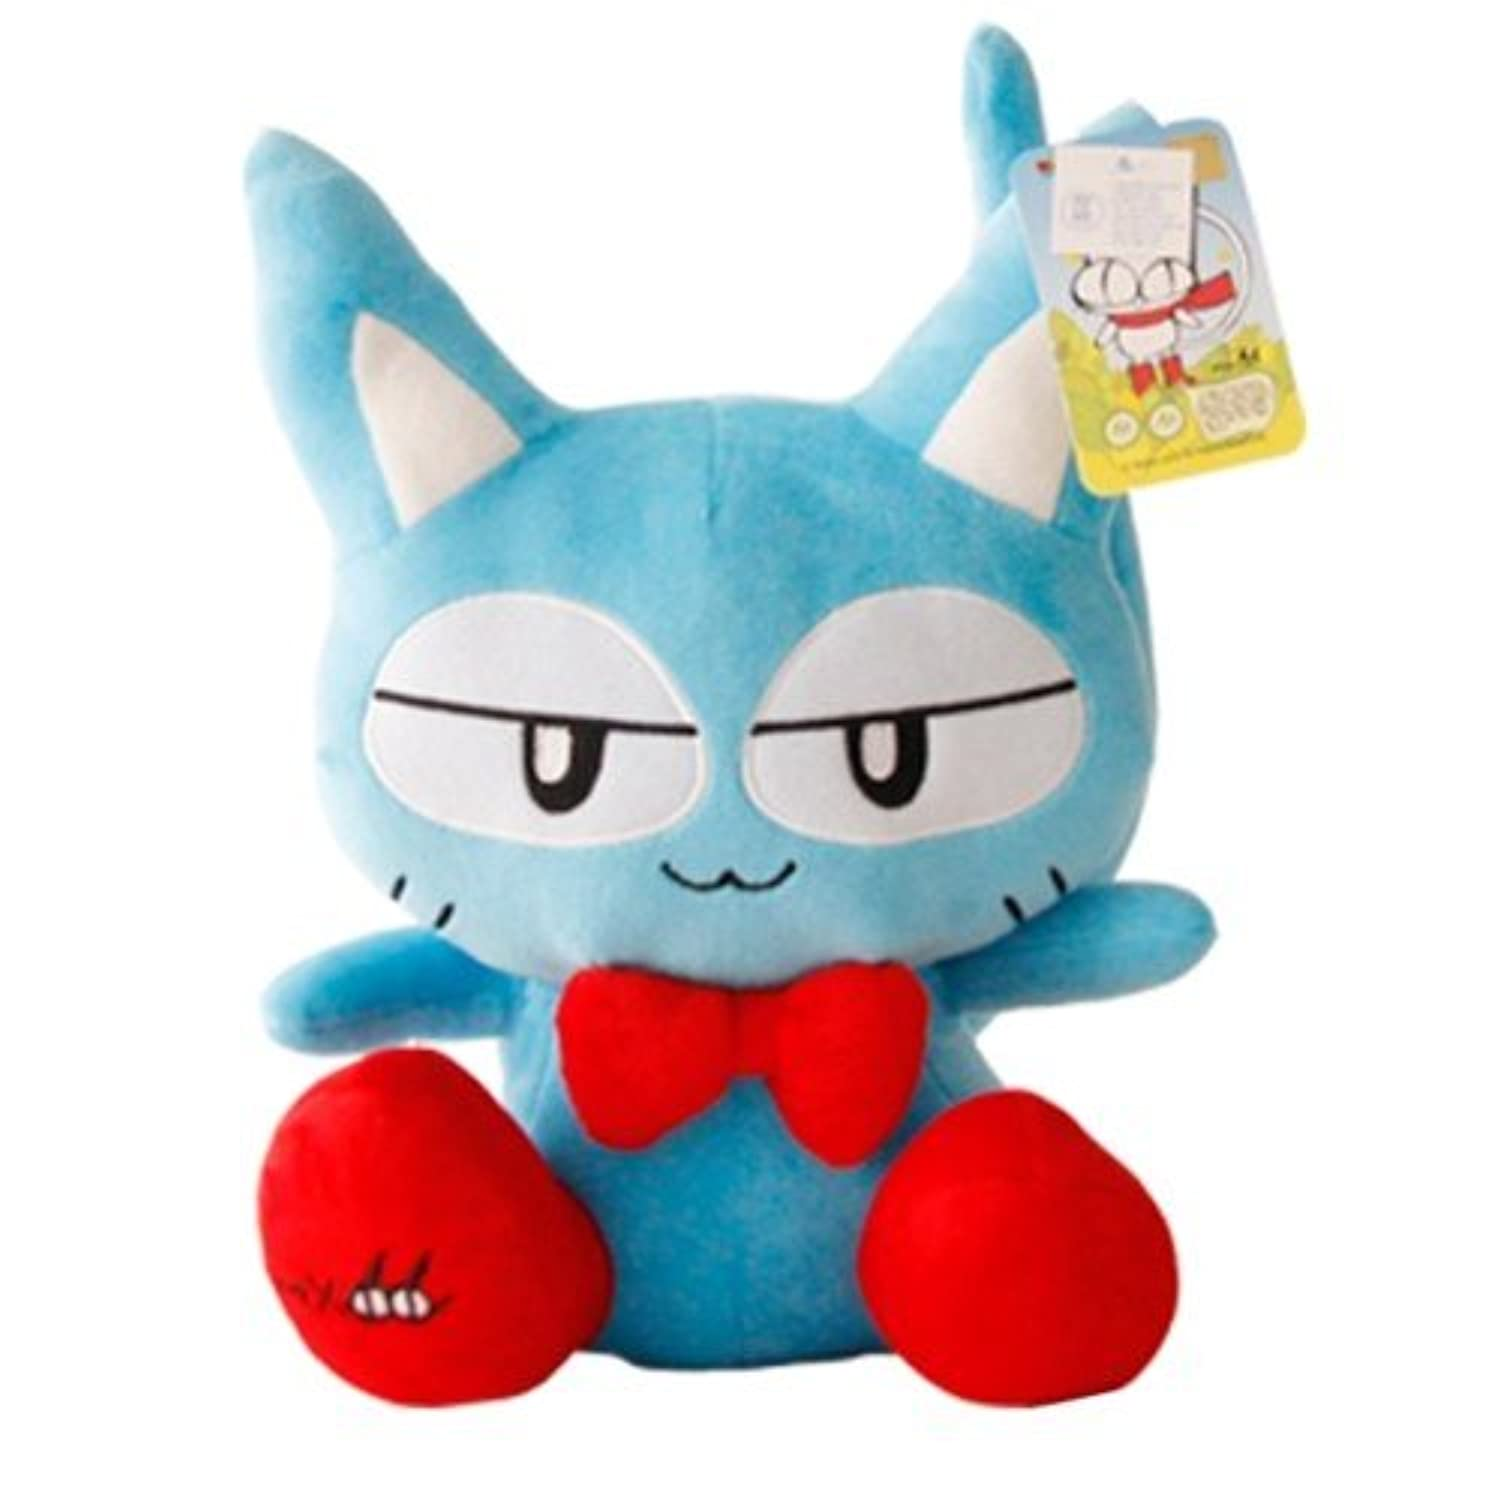 COTTONFOOD Myoo Blue Doll 30cm